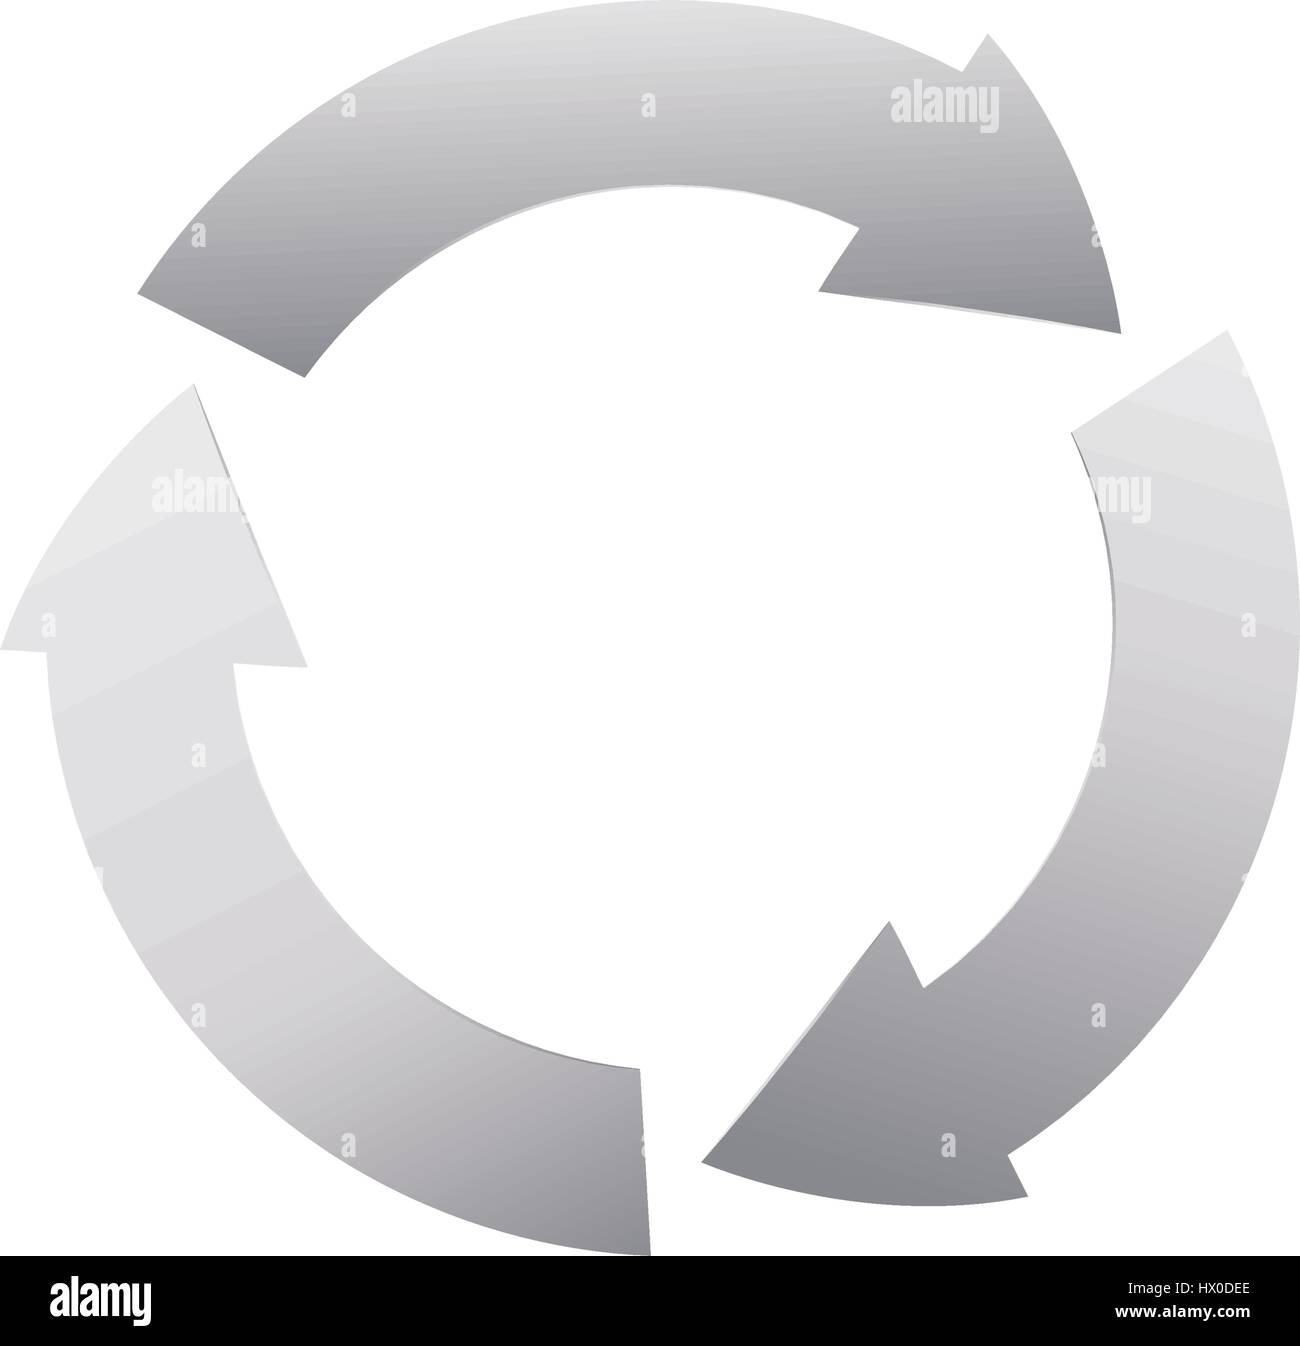 Recycle reduce and reuse - Stock Image